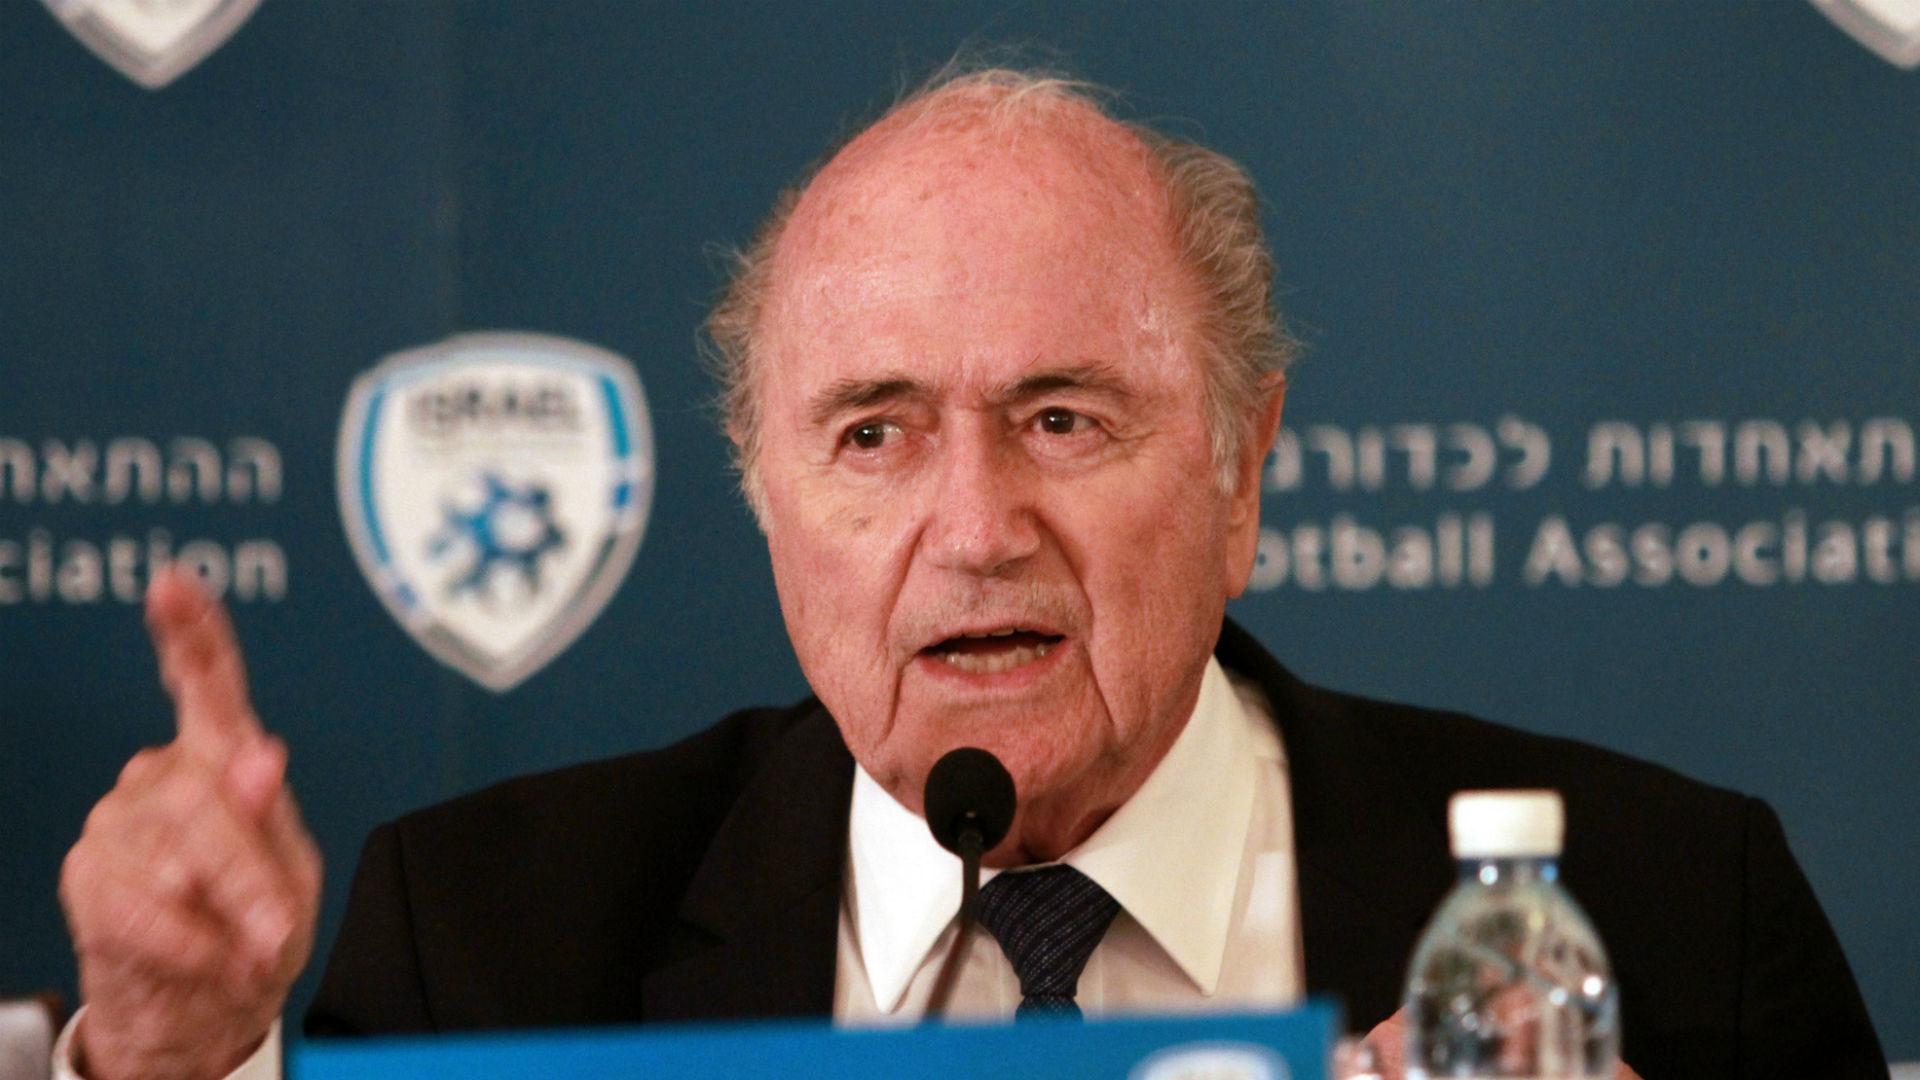 FIFA corruption investigation: Timeline of Wednesday's events